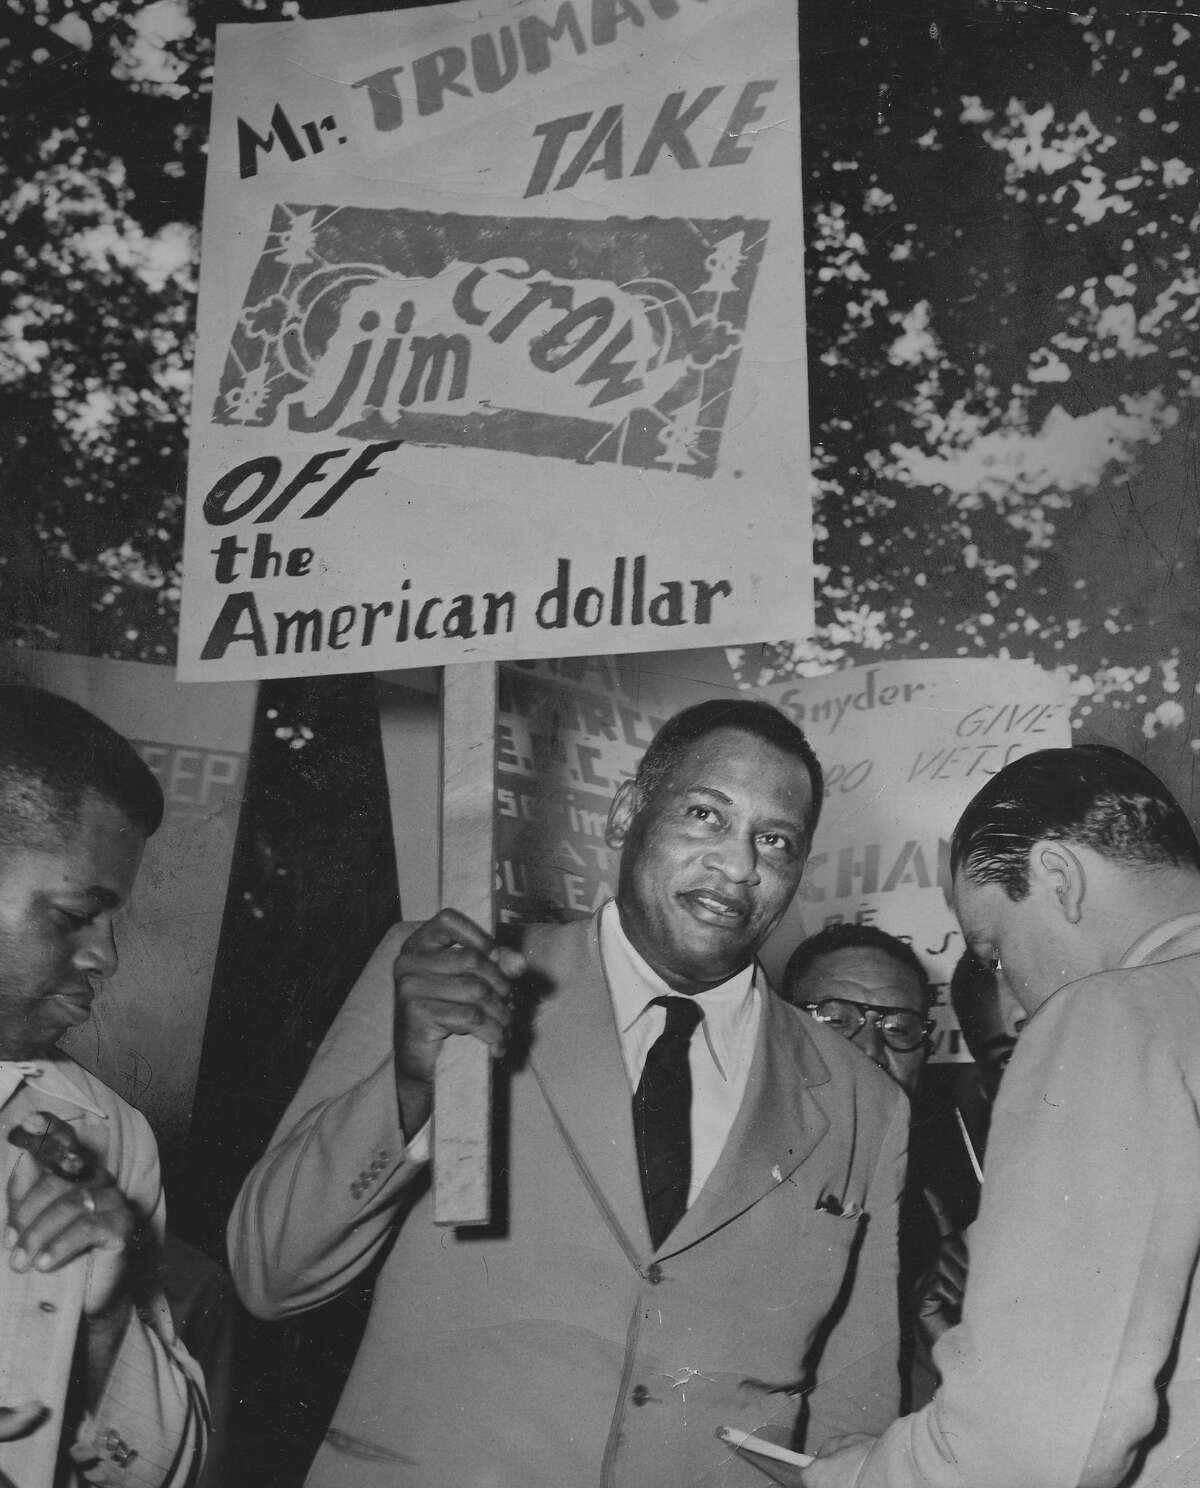 Paul Robeson, actor and singer, in a protest march outside the White House, with a banner requesting that President Truman take Jim Crow off the American dollar.